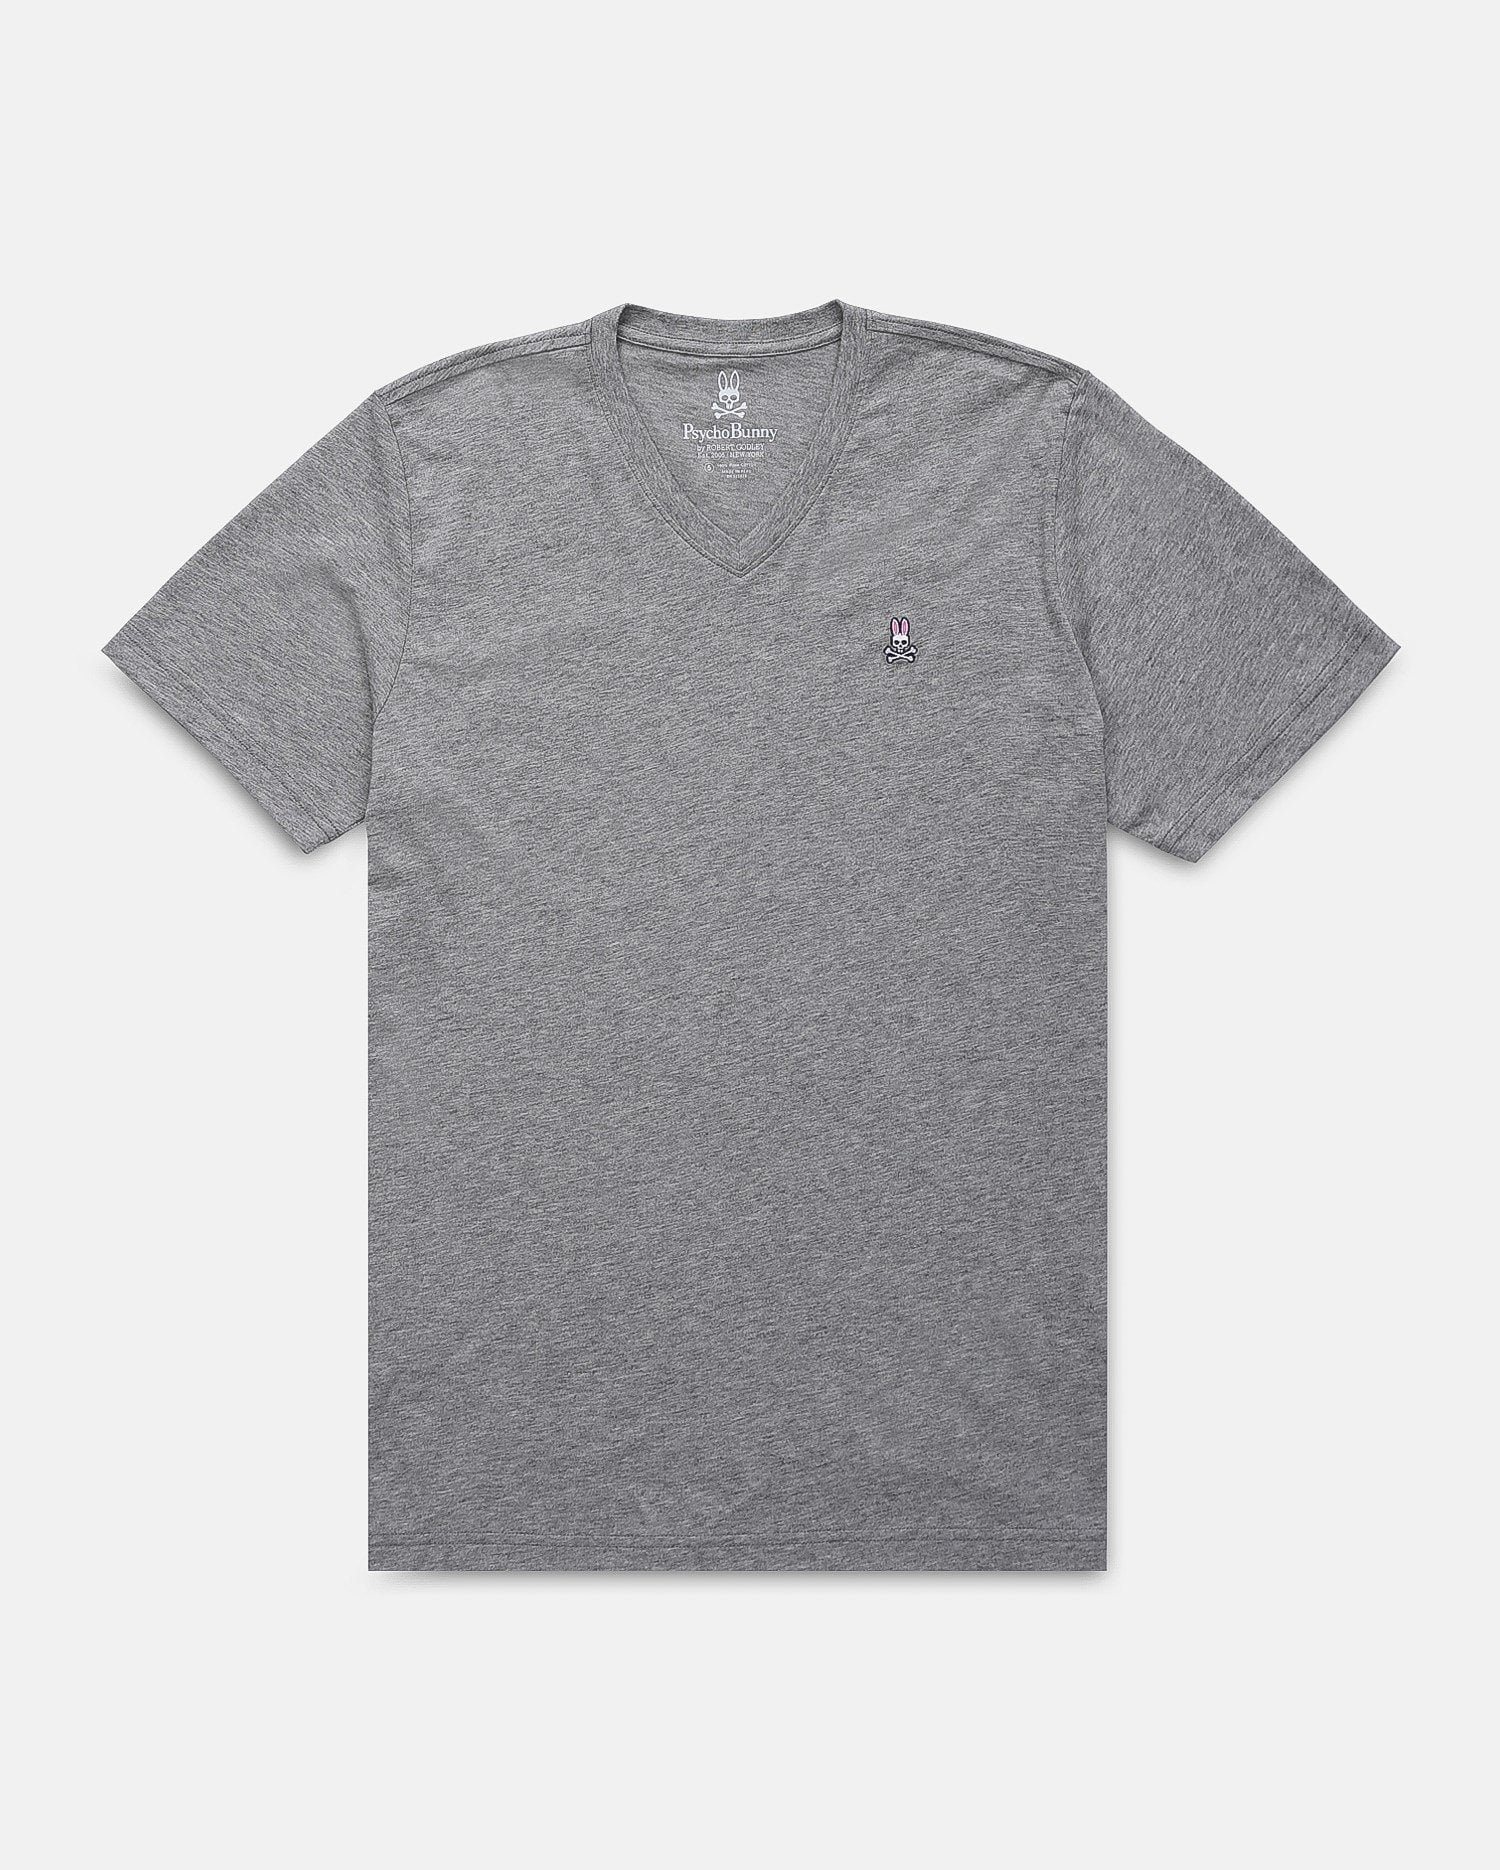 HEATHER GREY (HGY)